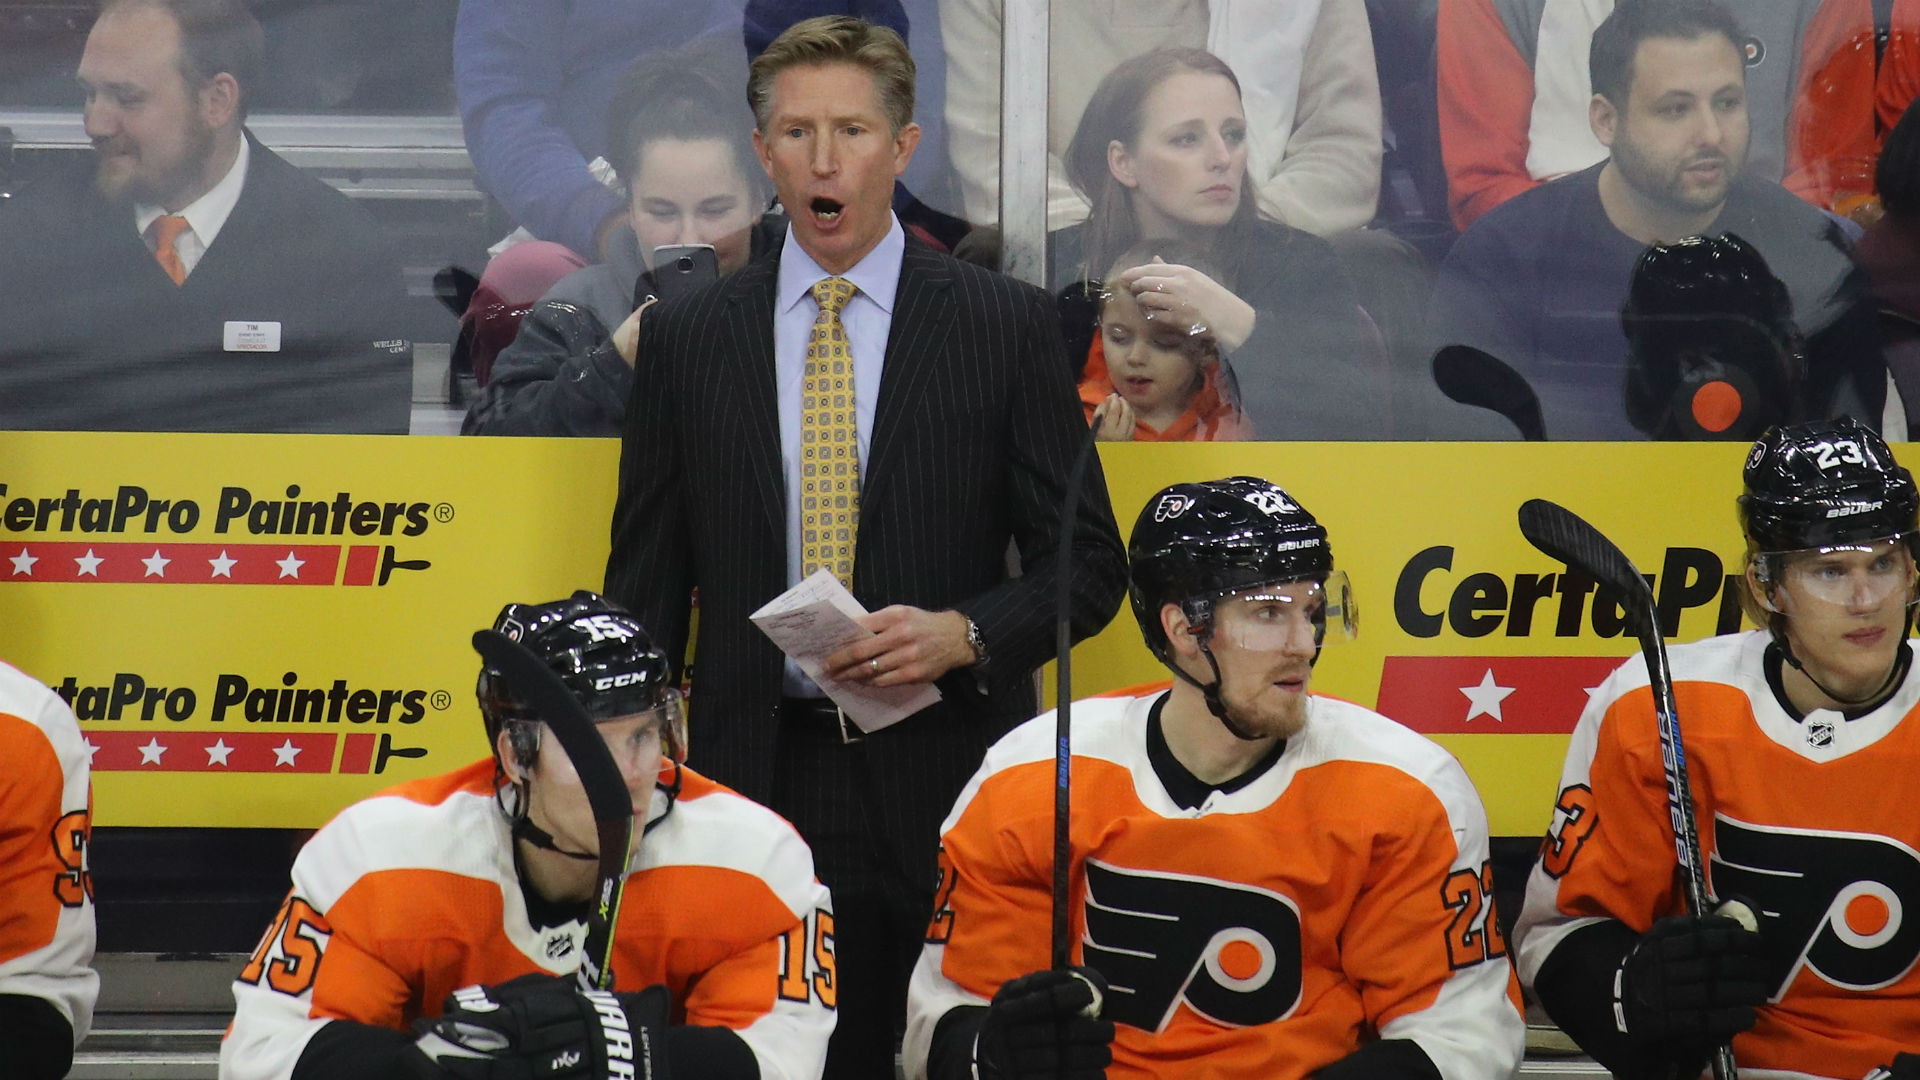 Philadelphia fires head coach Dave Hakstol 31 games into season